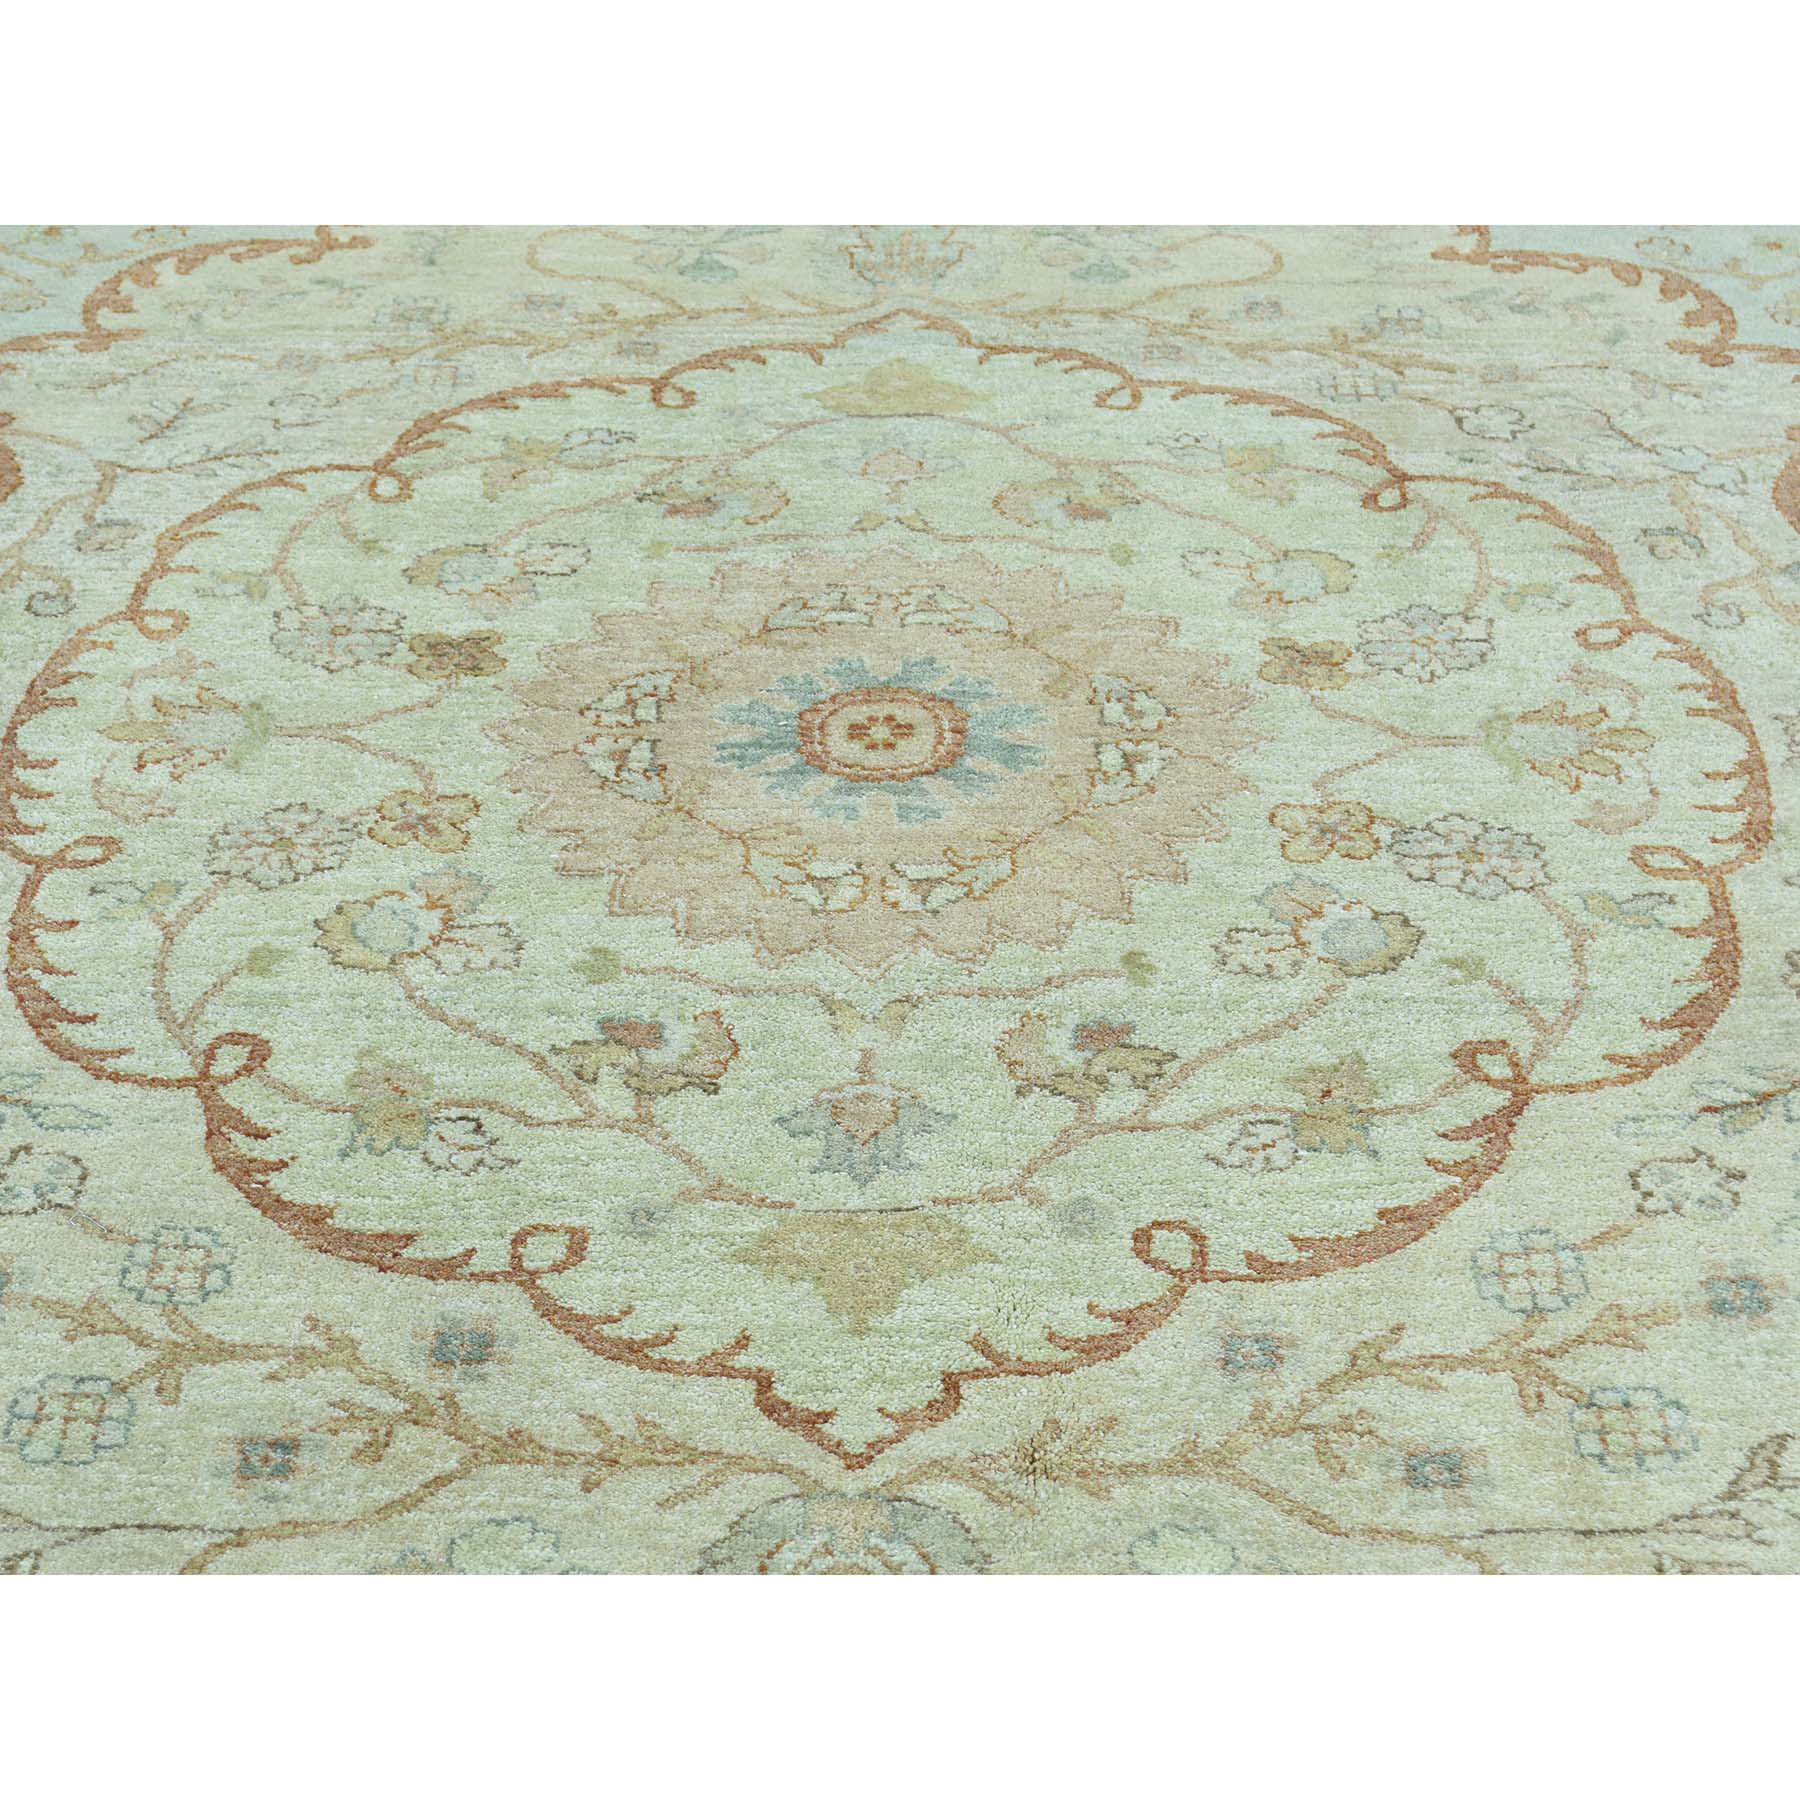 8-1 x10-5  Antiqued Tabriz with Pastel Colors Hand-Knotted Oriental Rug